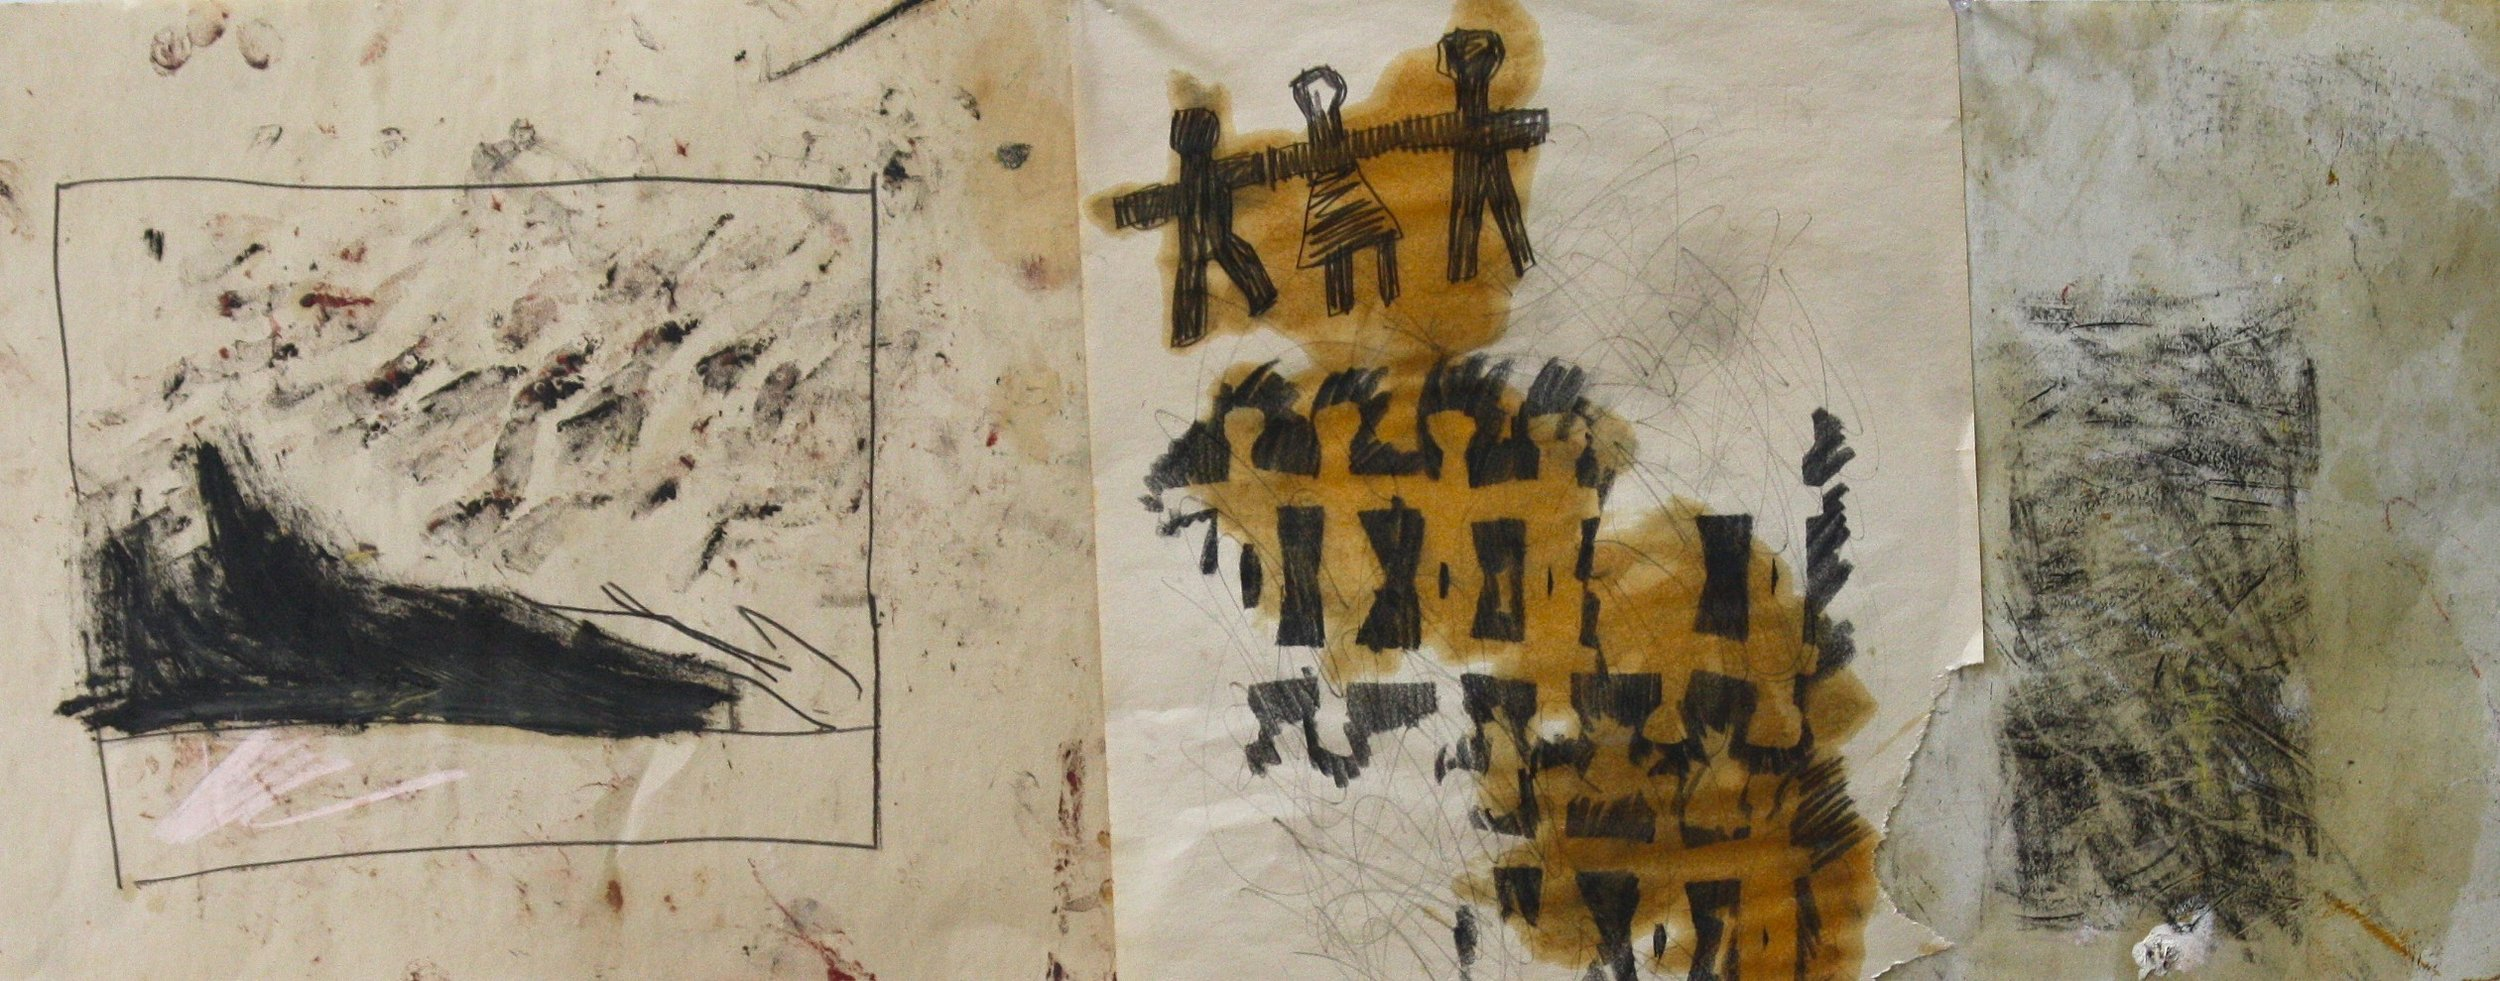 disasters of war_oil on paper 14x33 2013.jpg